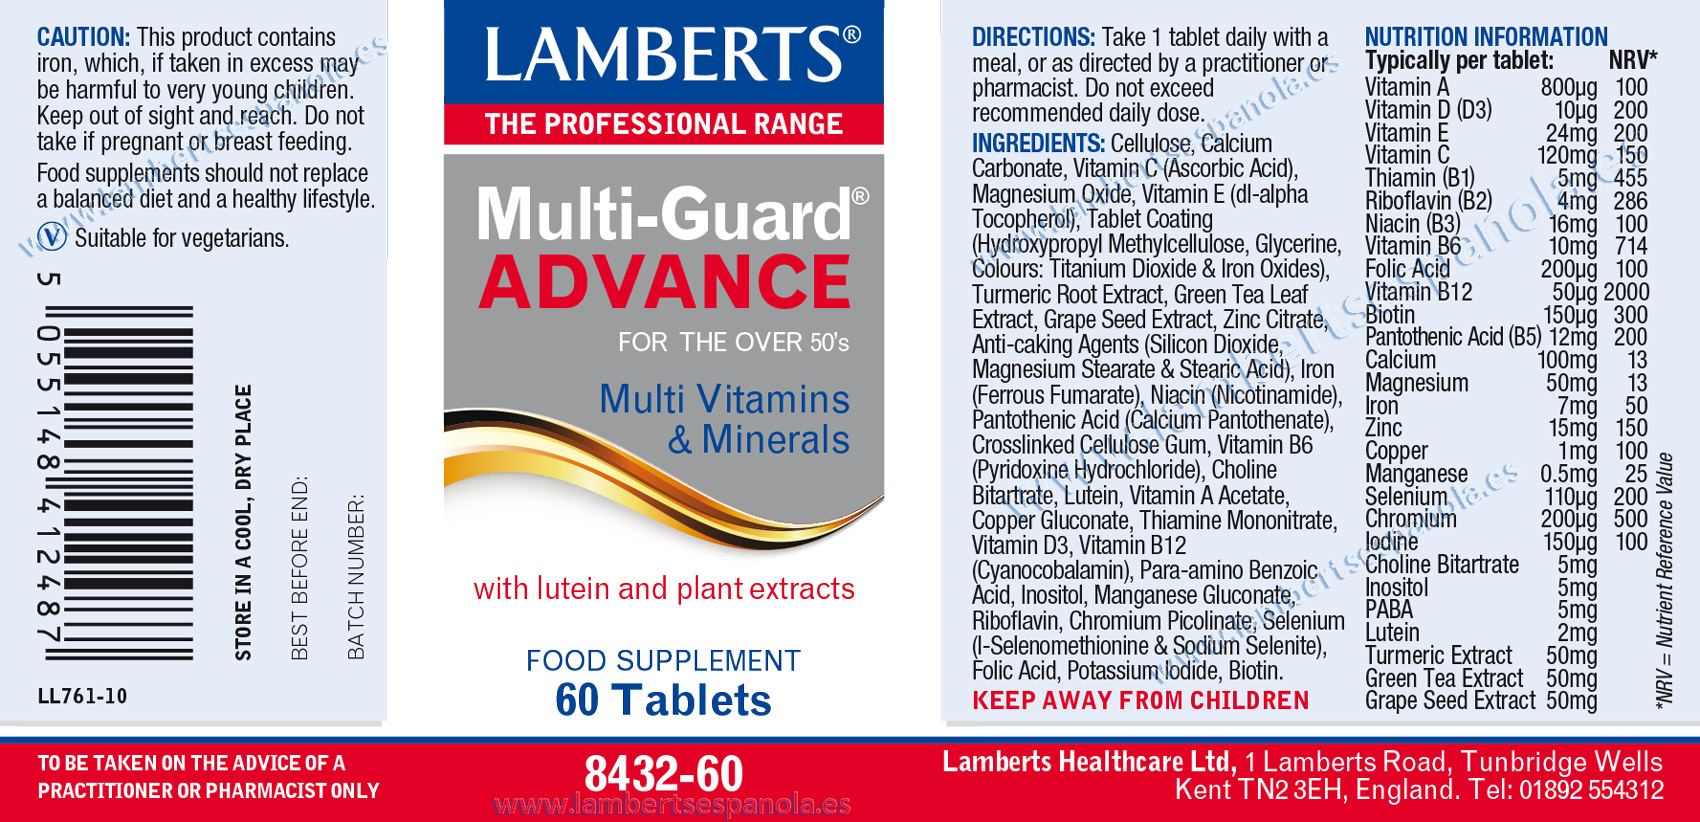 label of Multi-Guard® Advance by Lamberts with its properties and indications